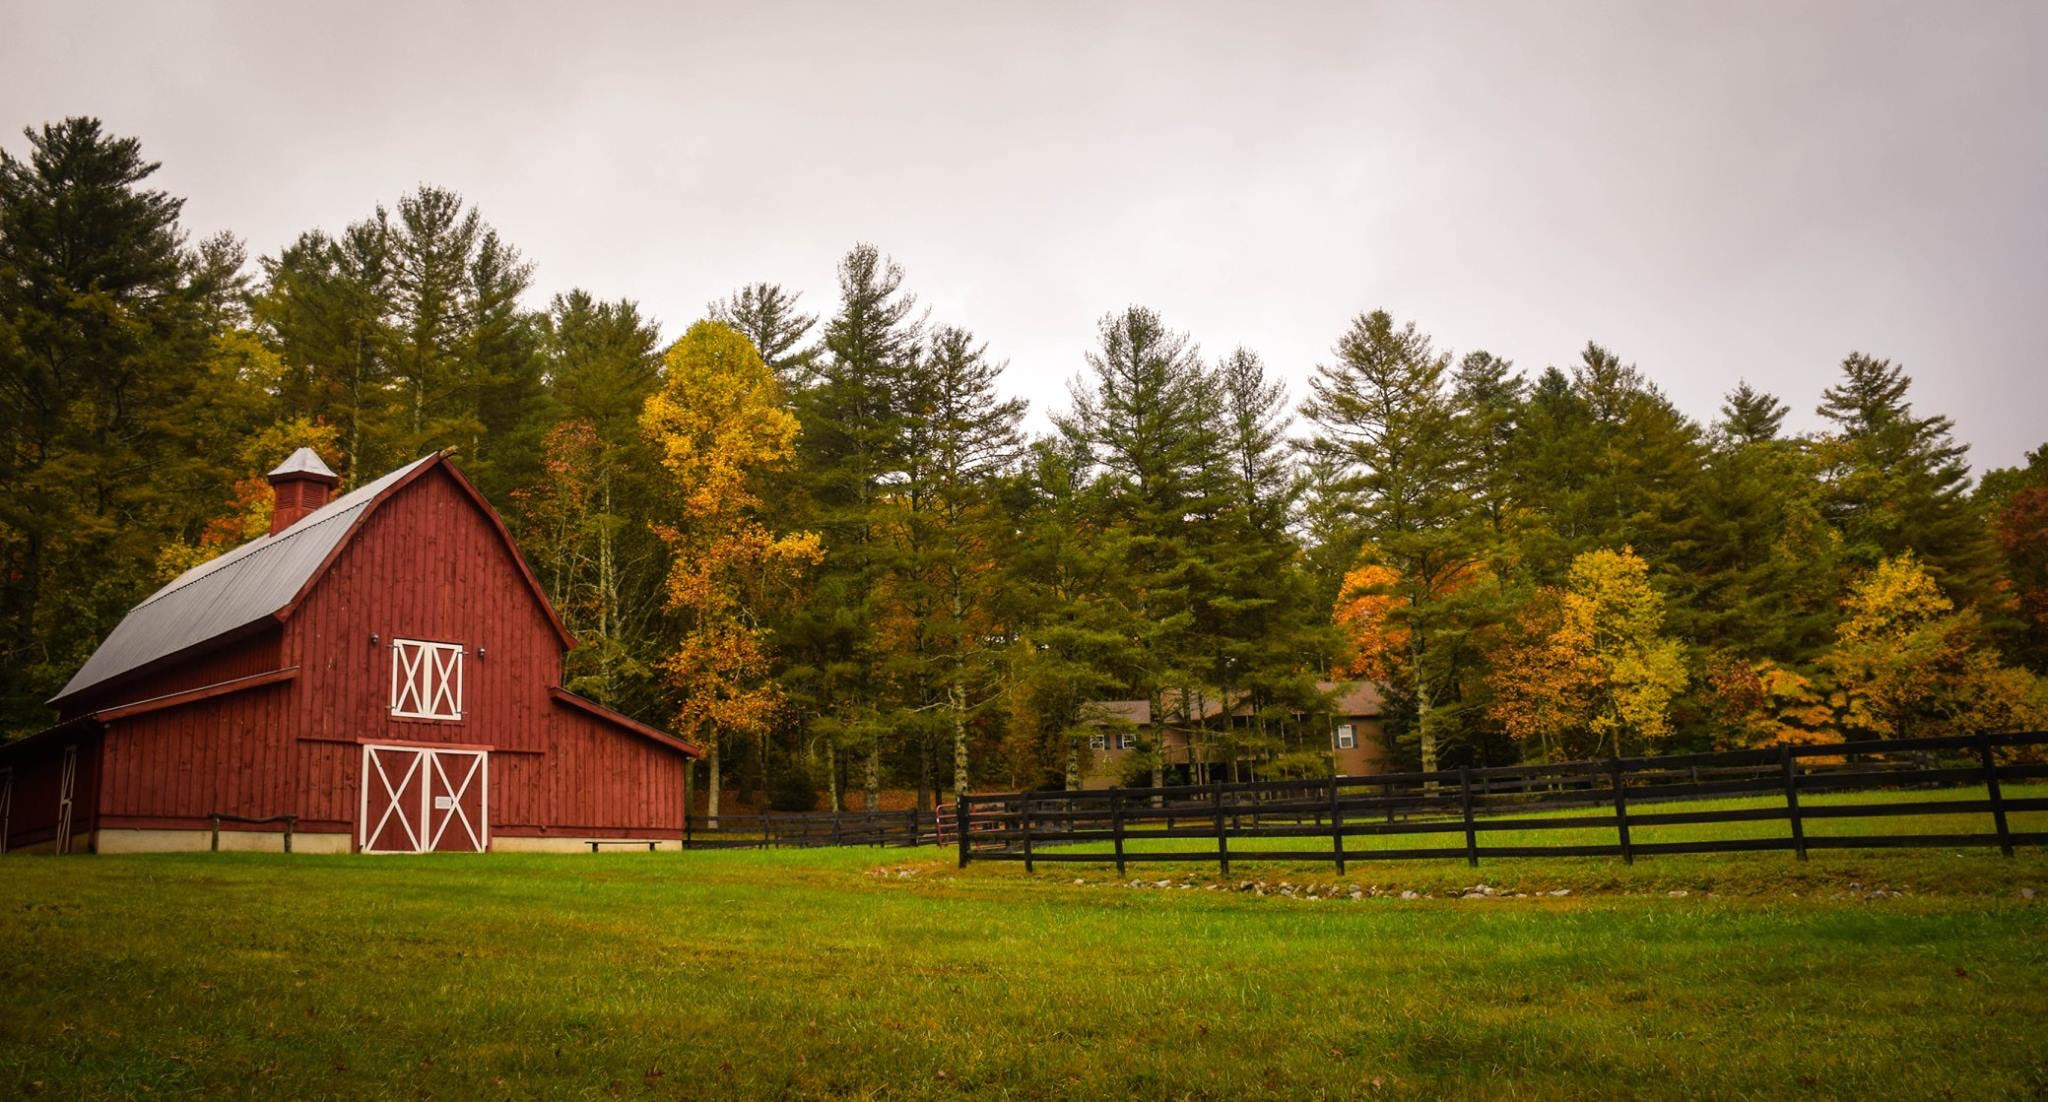 Beautiful Red Barn Next to Black Fence and Trees - Farm Background Wallpaper Pictures